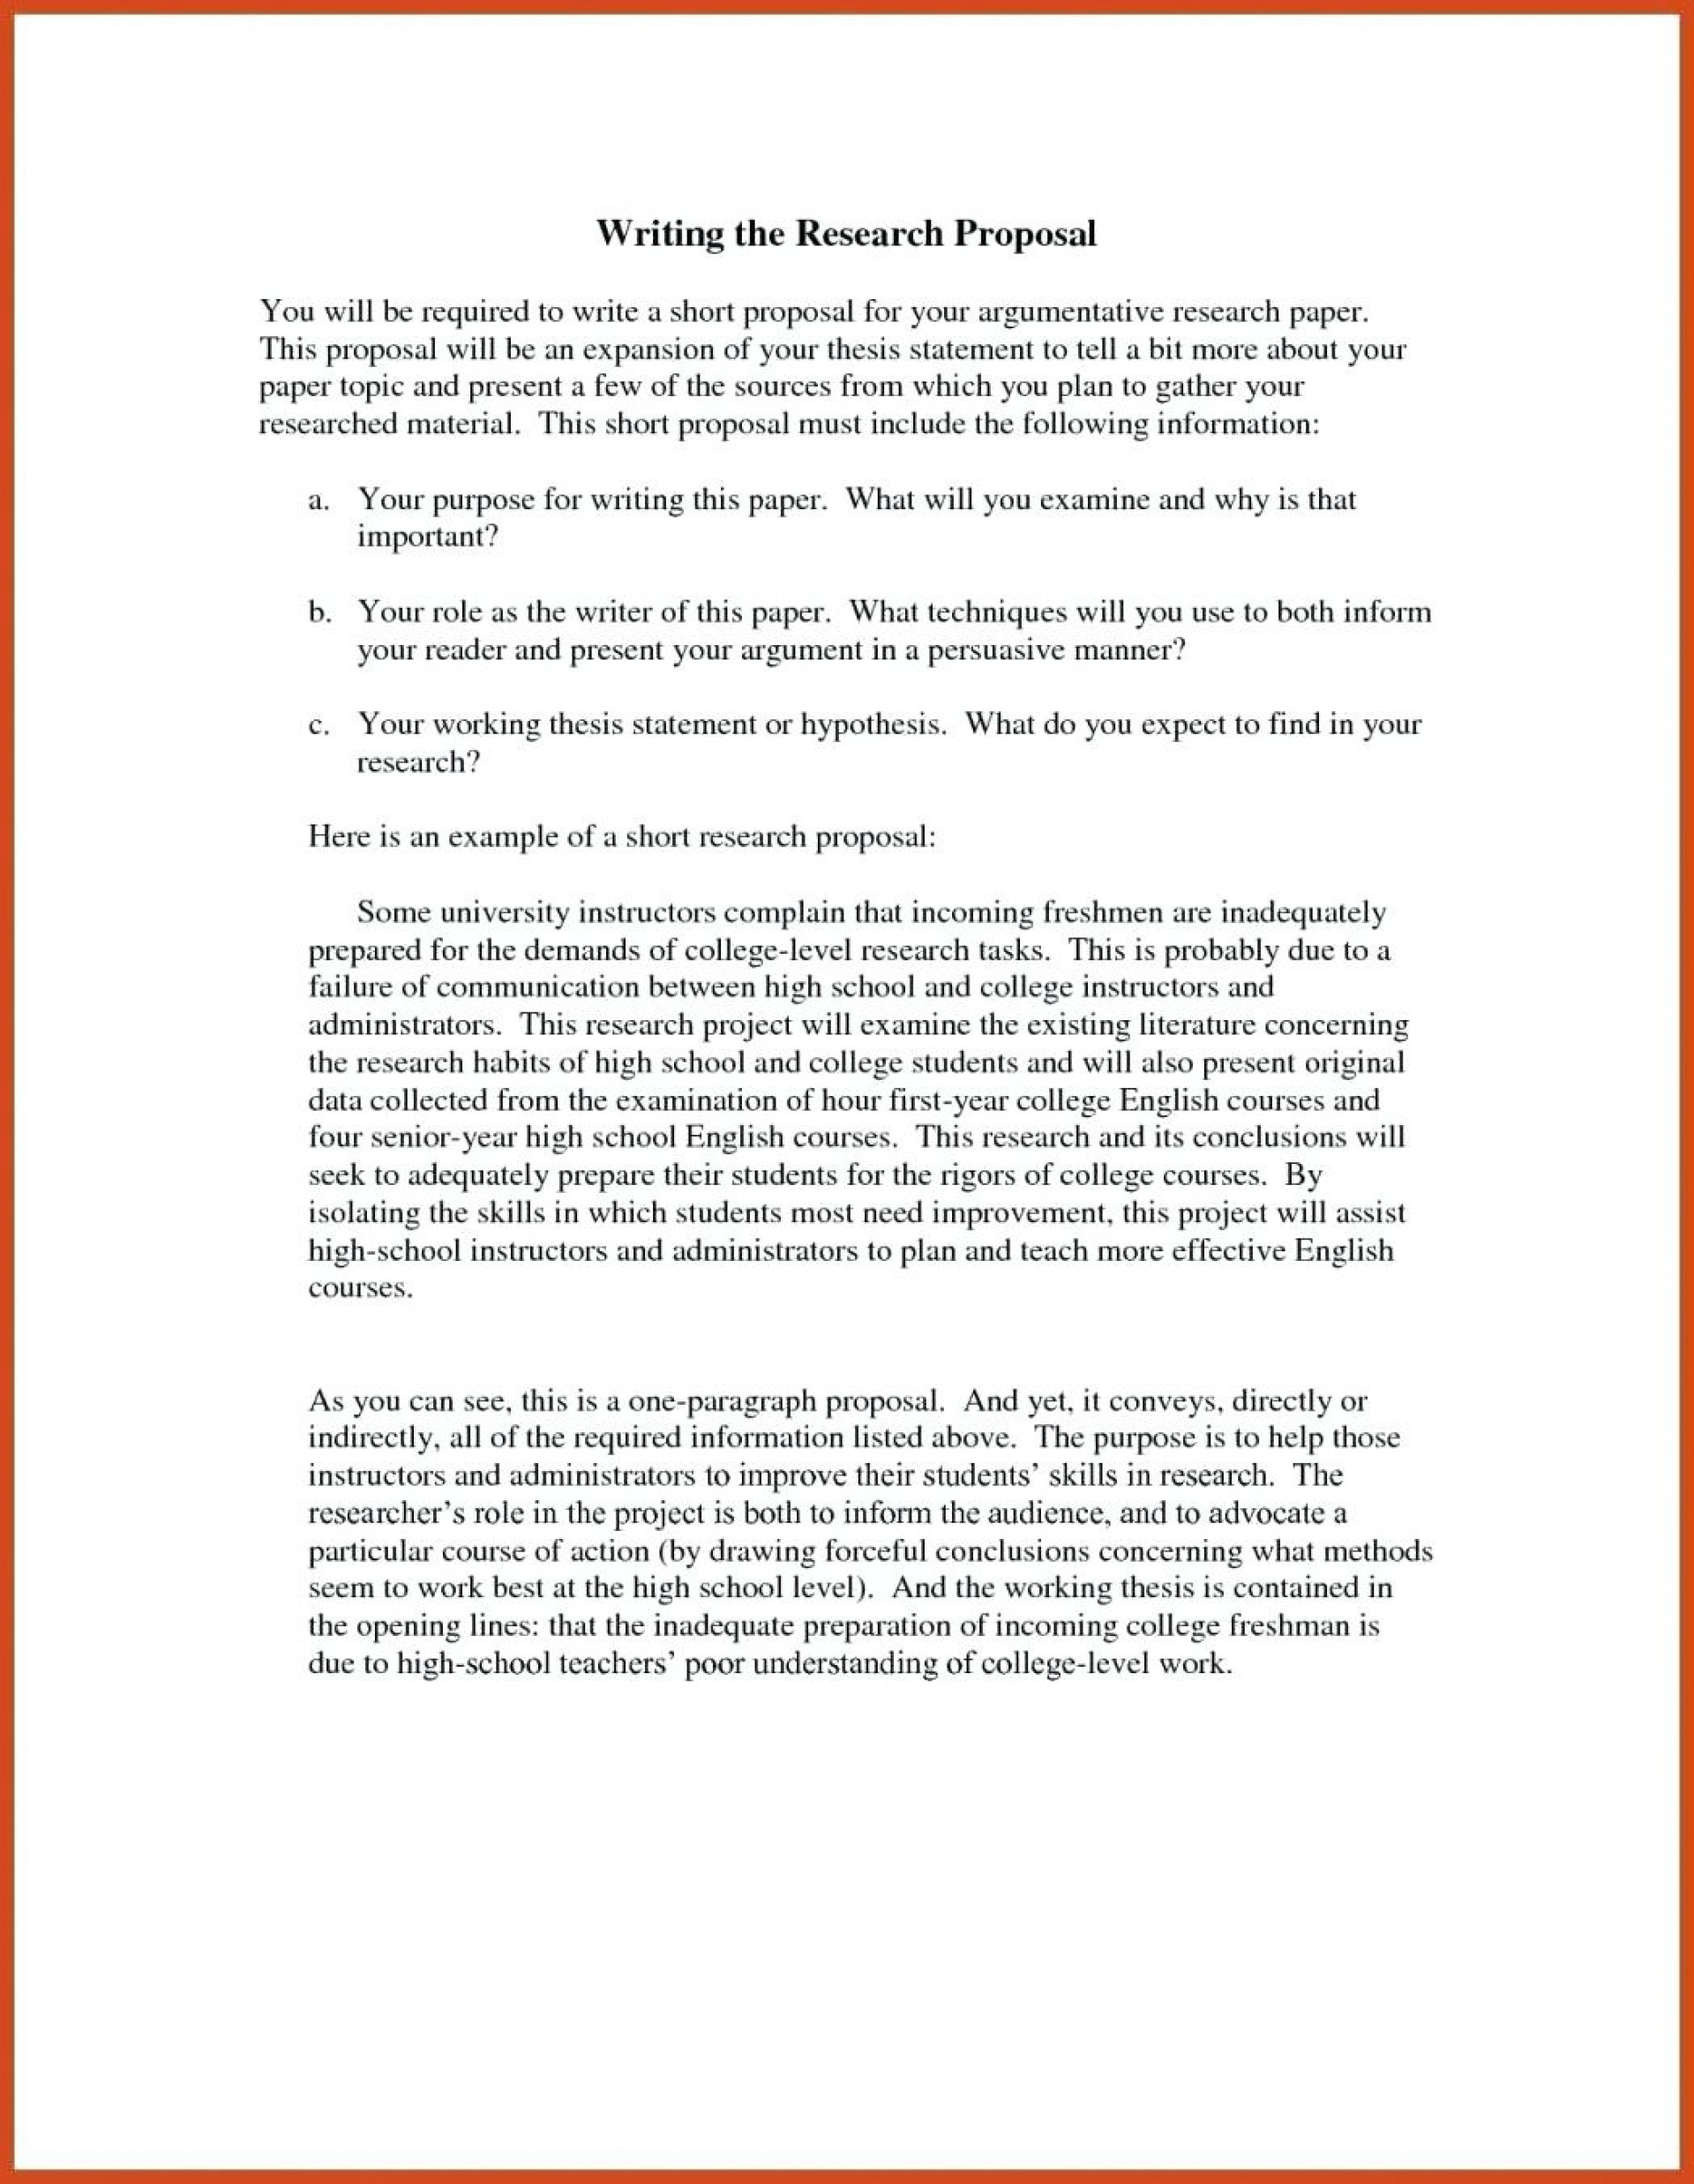 025 Sop Latex Template Research Plan Example Cover Letters Travel Agent An Of Paper In Format Proposal Design Onlines To Read Remarkable Essays Online Short Best 1920